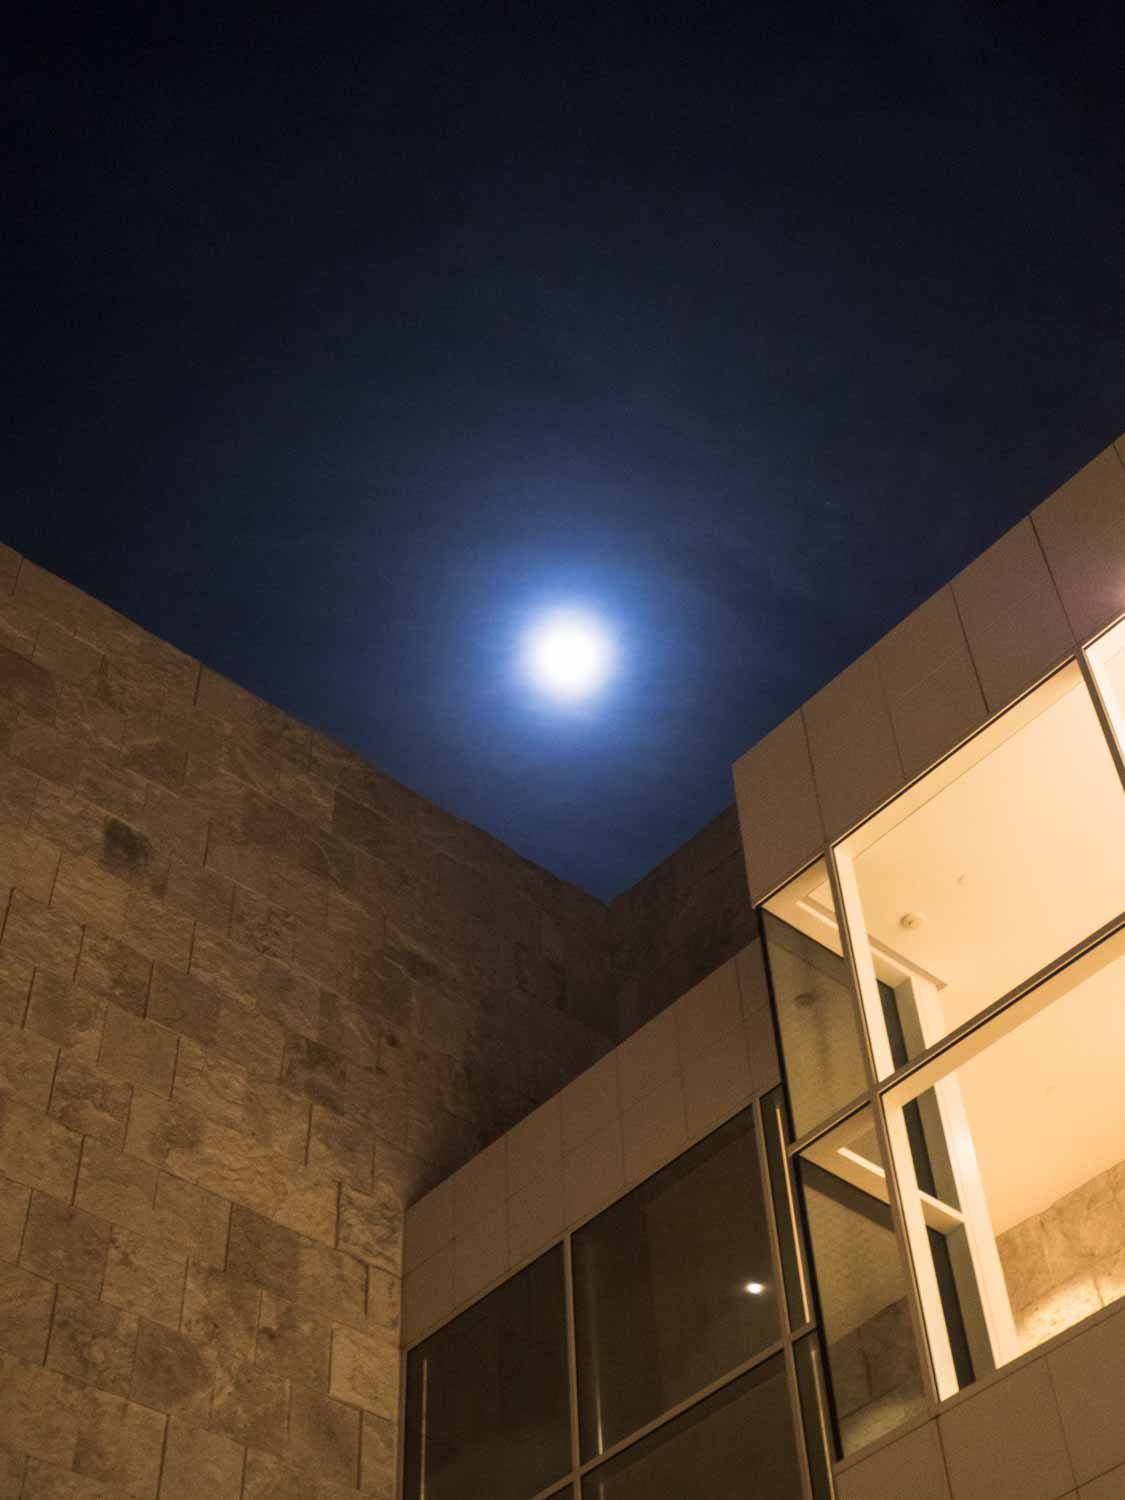 getty center moon